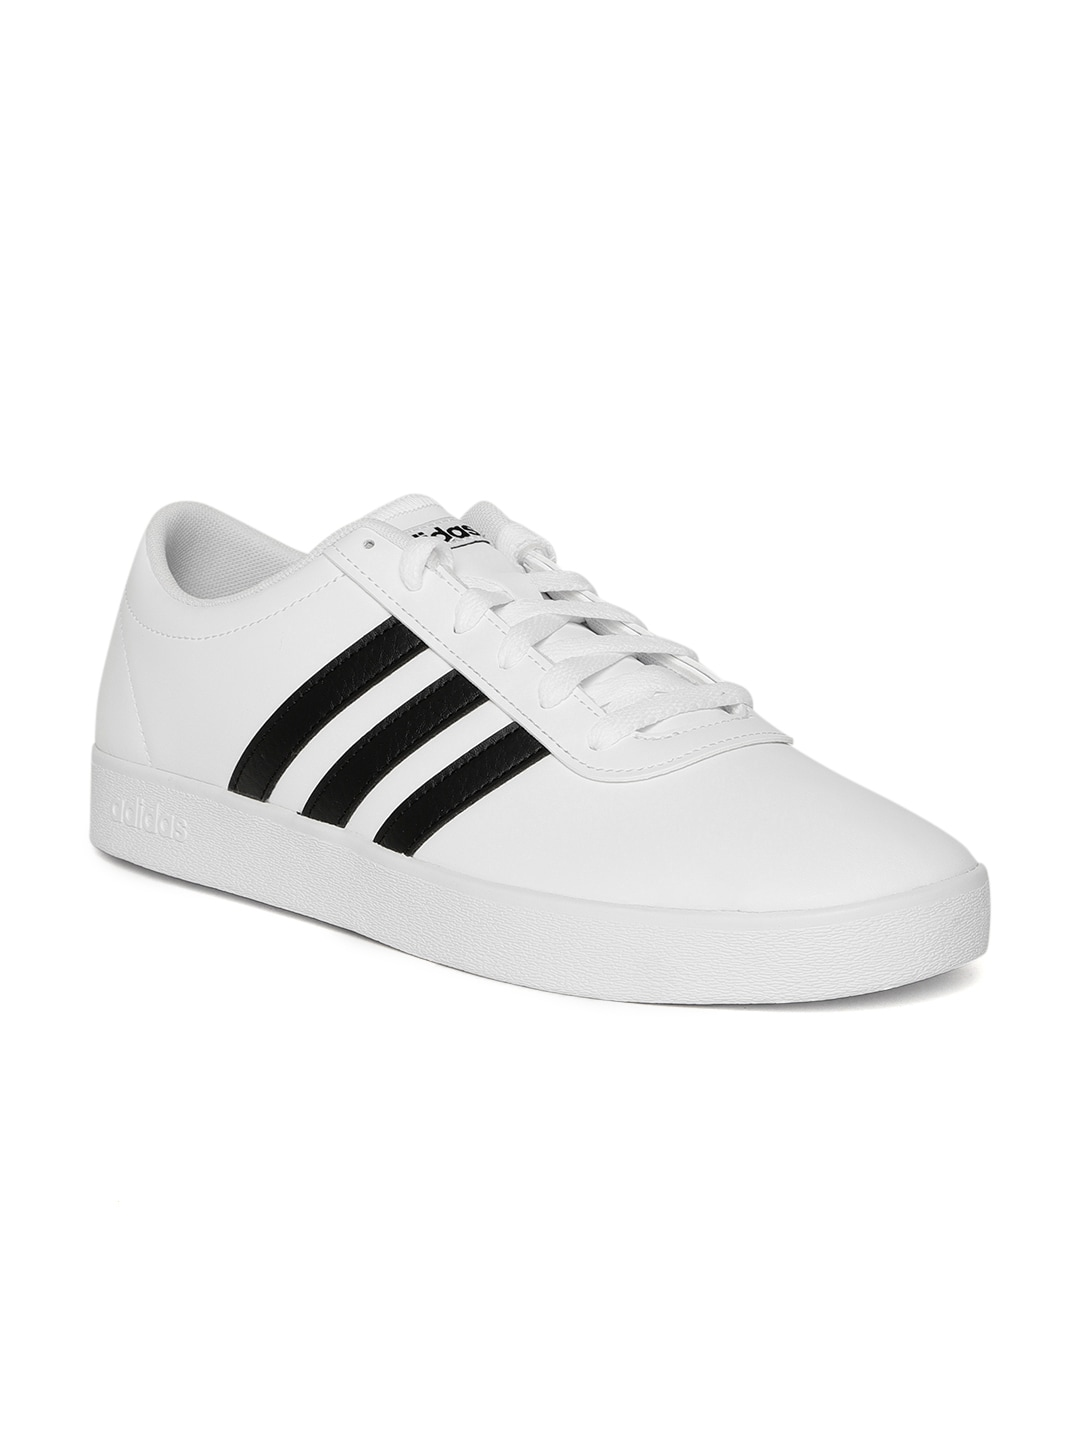 32e0d7b0fdf2 Adidas Originals White Footwear - Buy Adidas Originals White Footwear  online in India